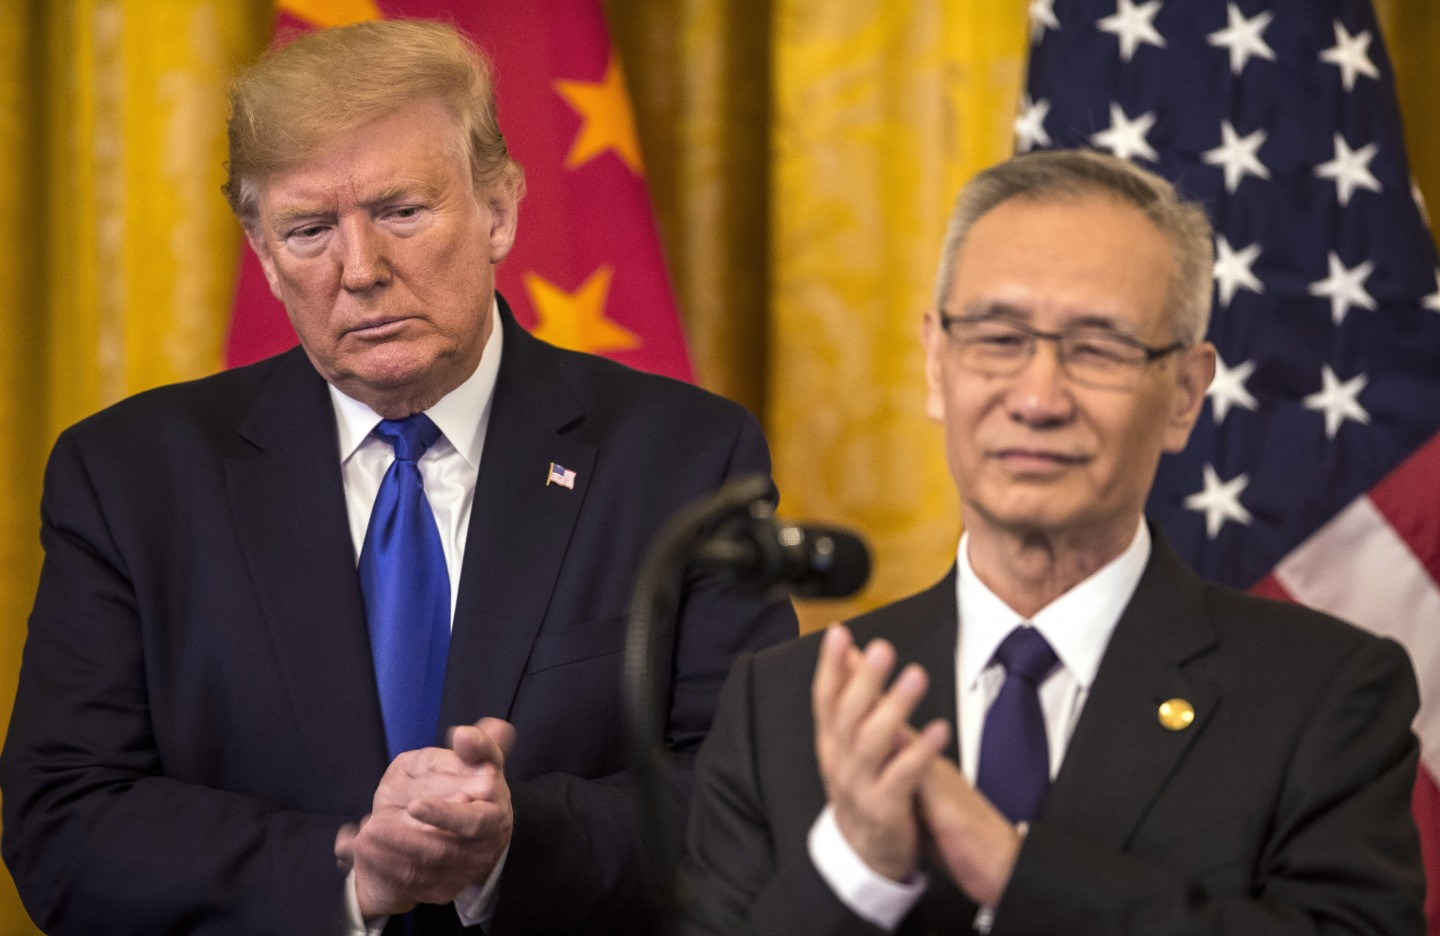 US President Donald Trump applauds as Liu He, China's vice premier, speaks during a signing ceremony for the US-China phase-one trade agreement in Washington on 15 January 2020. (Zach Gibson/Bloomberg)